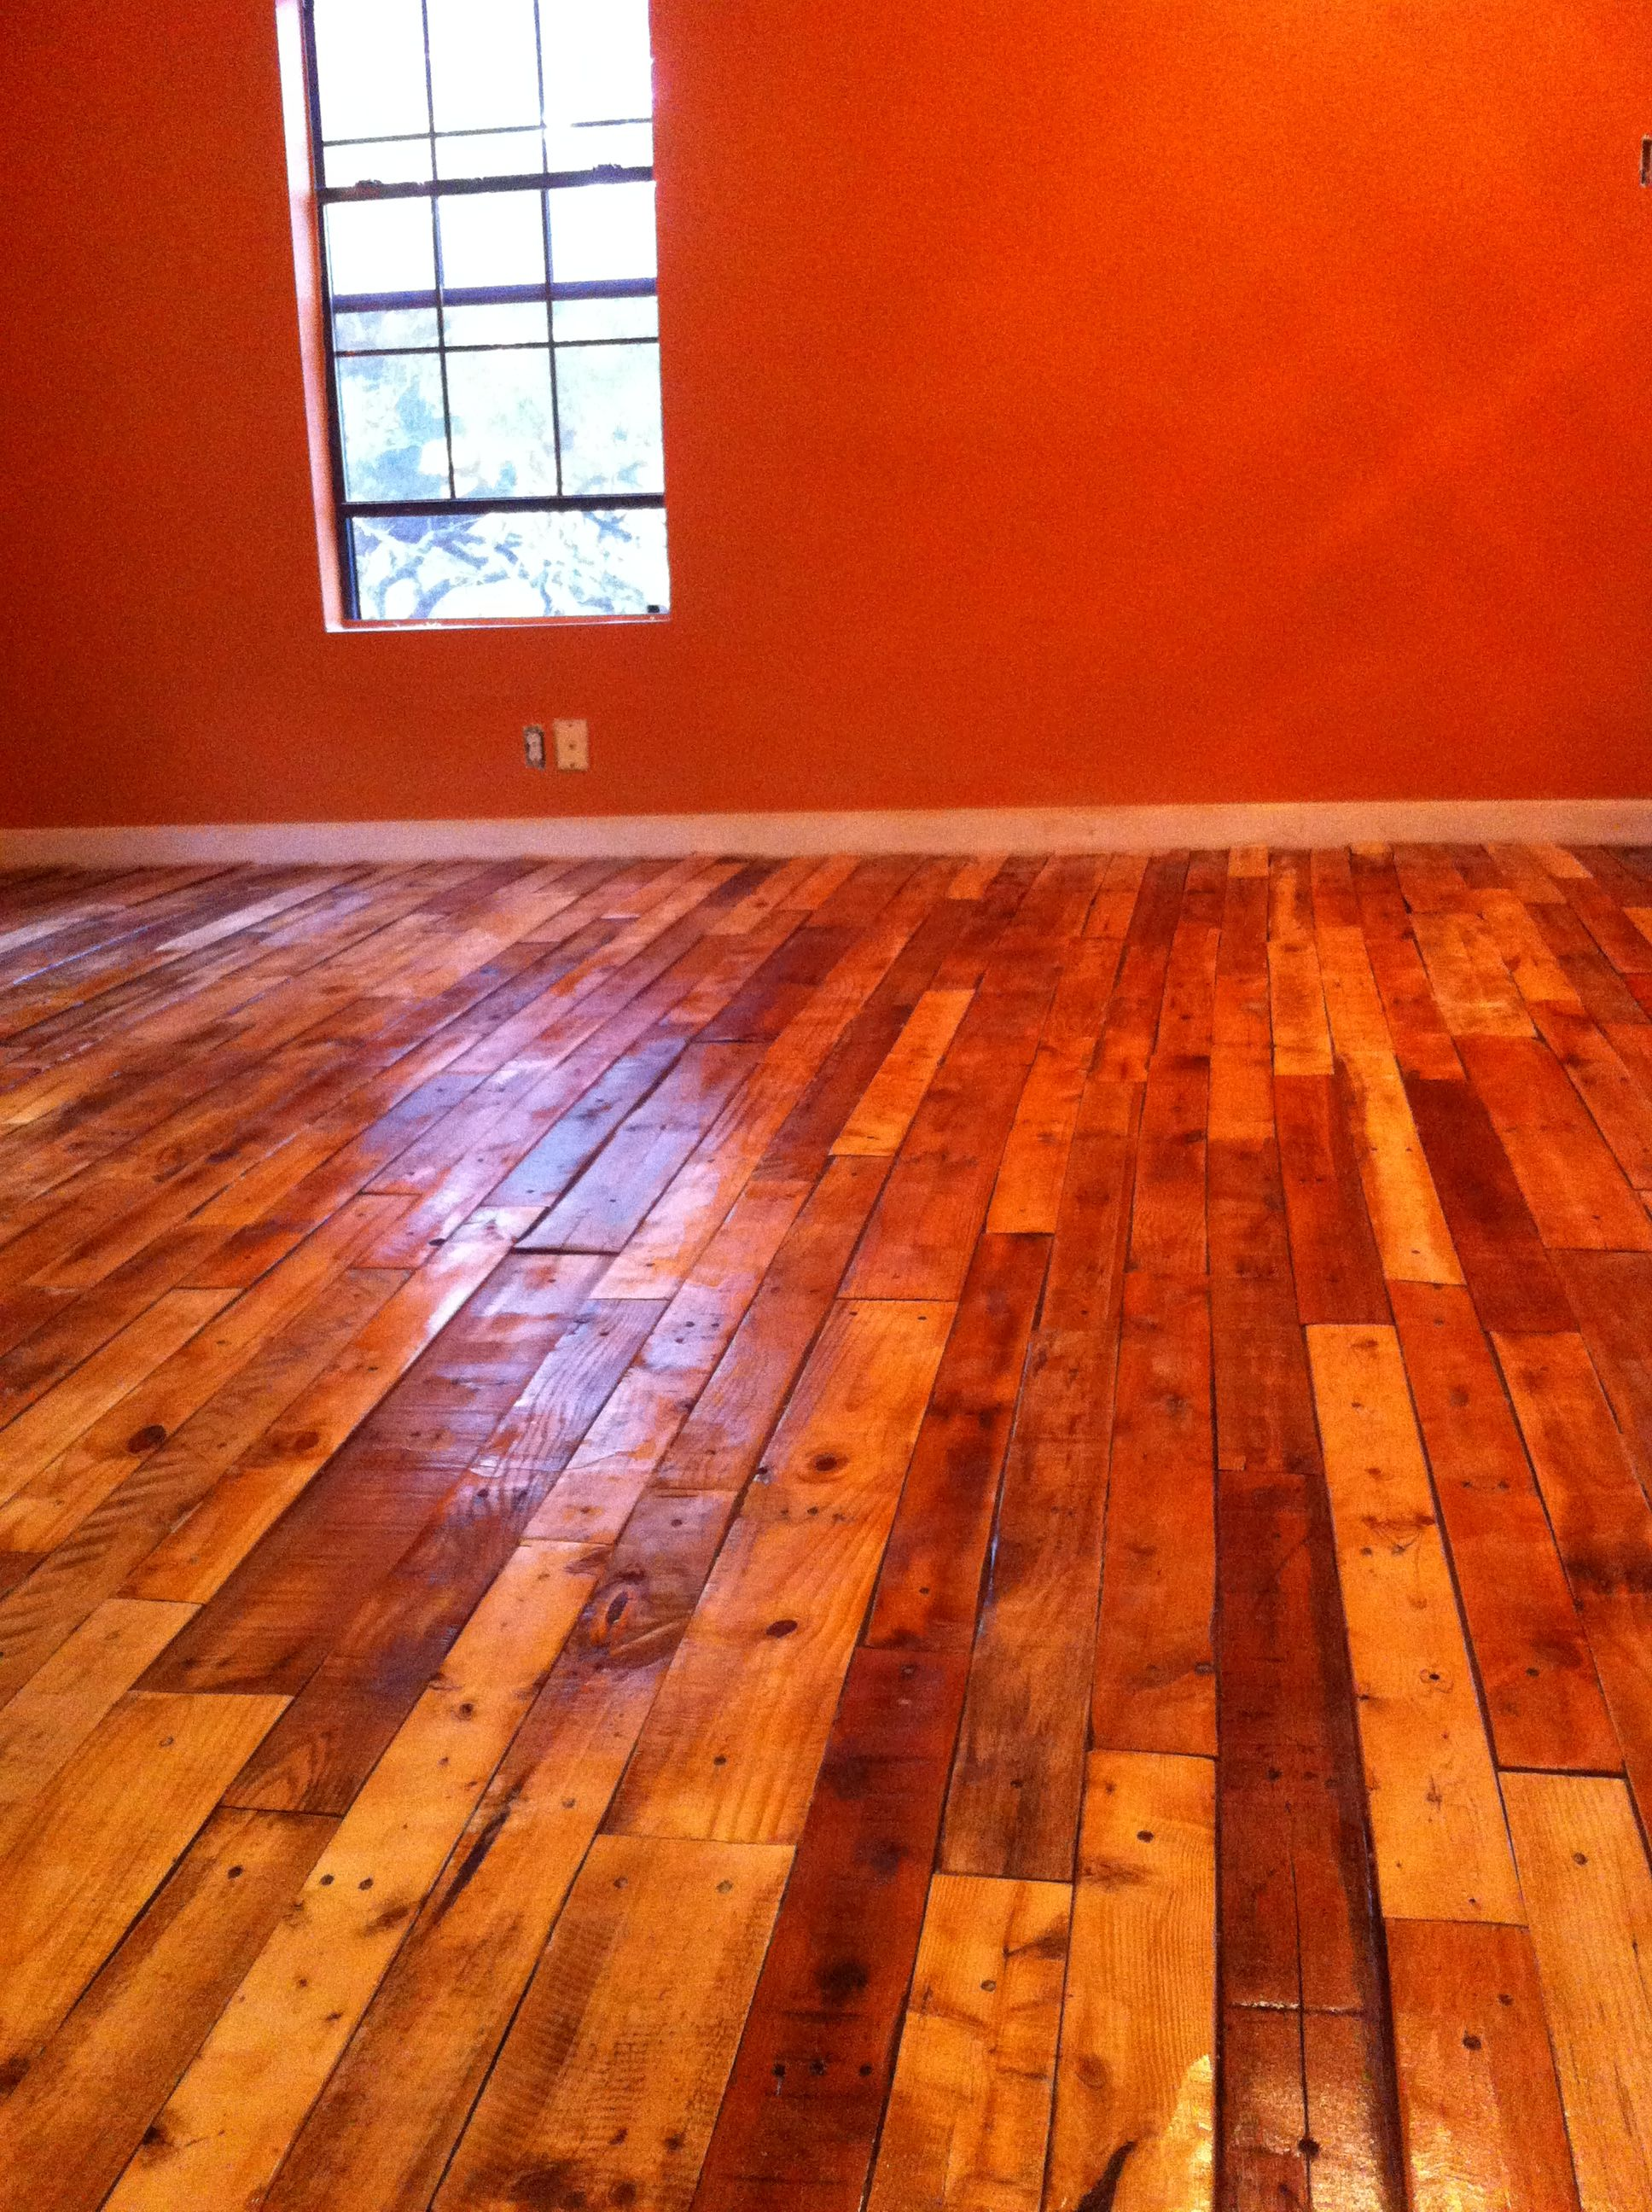 Pin By Lee Mayer On Projects Wood Pallet Flooring Pallet Floors Wood Pallets